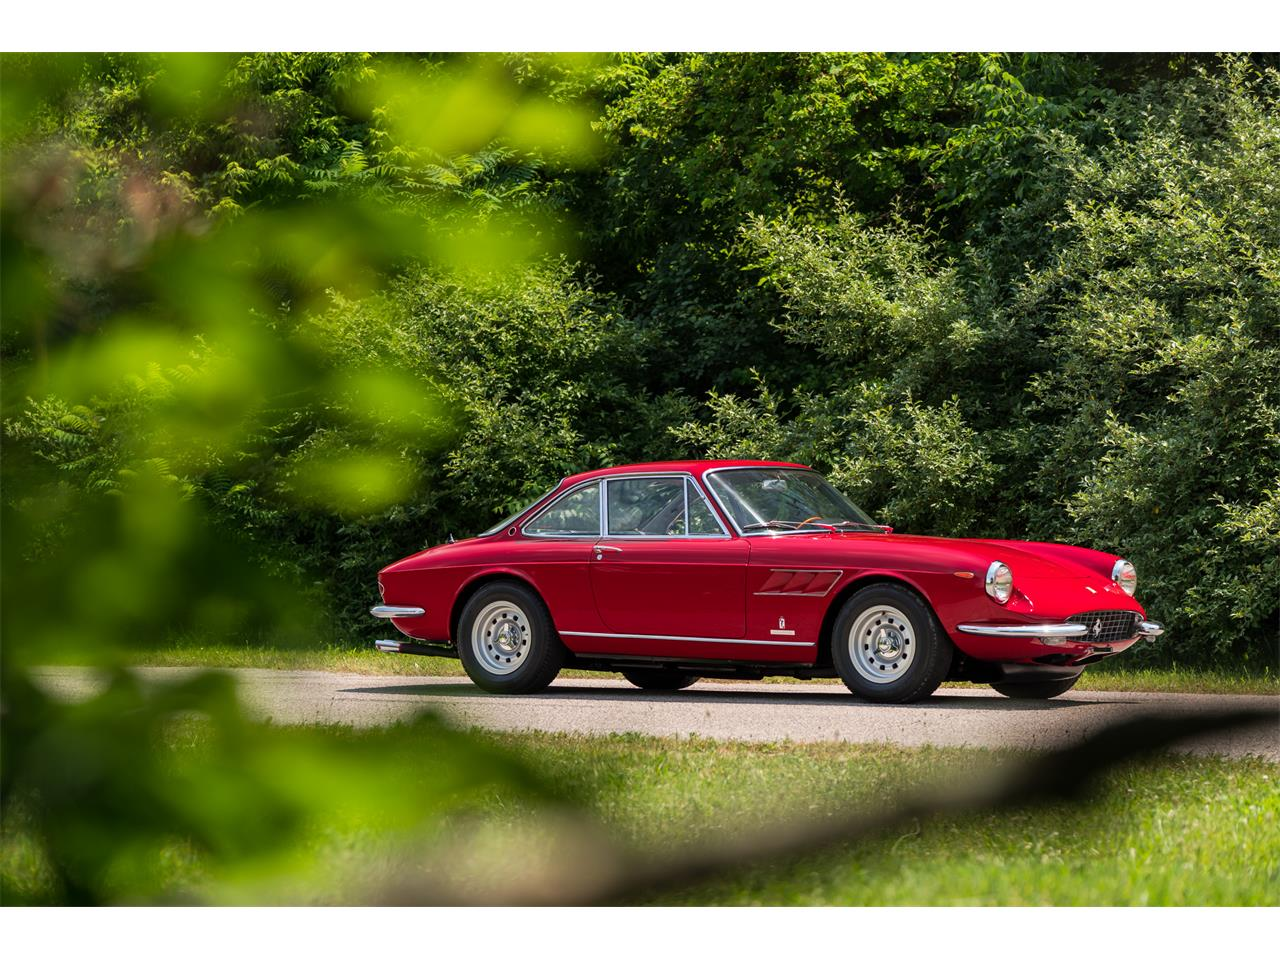 Large Picture of 1967 330 GTC - $650,000.00 - QNXU